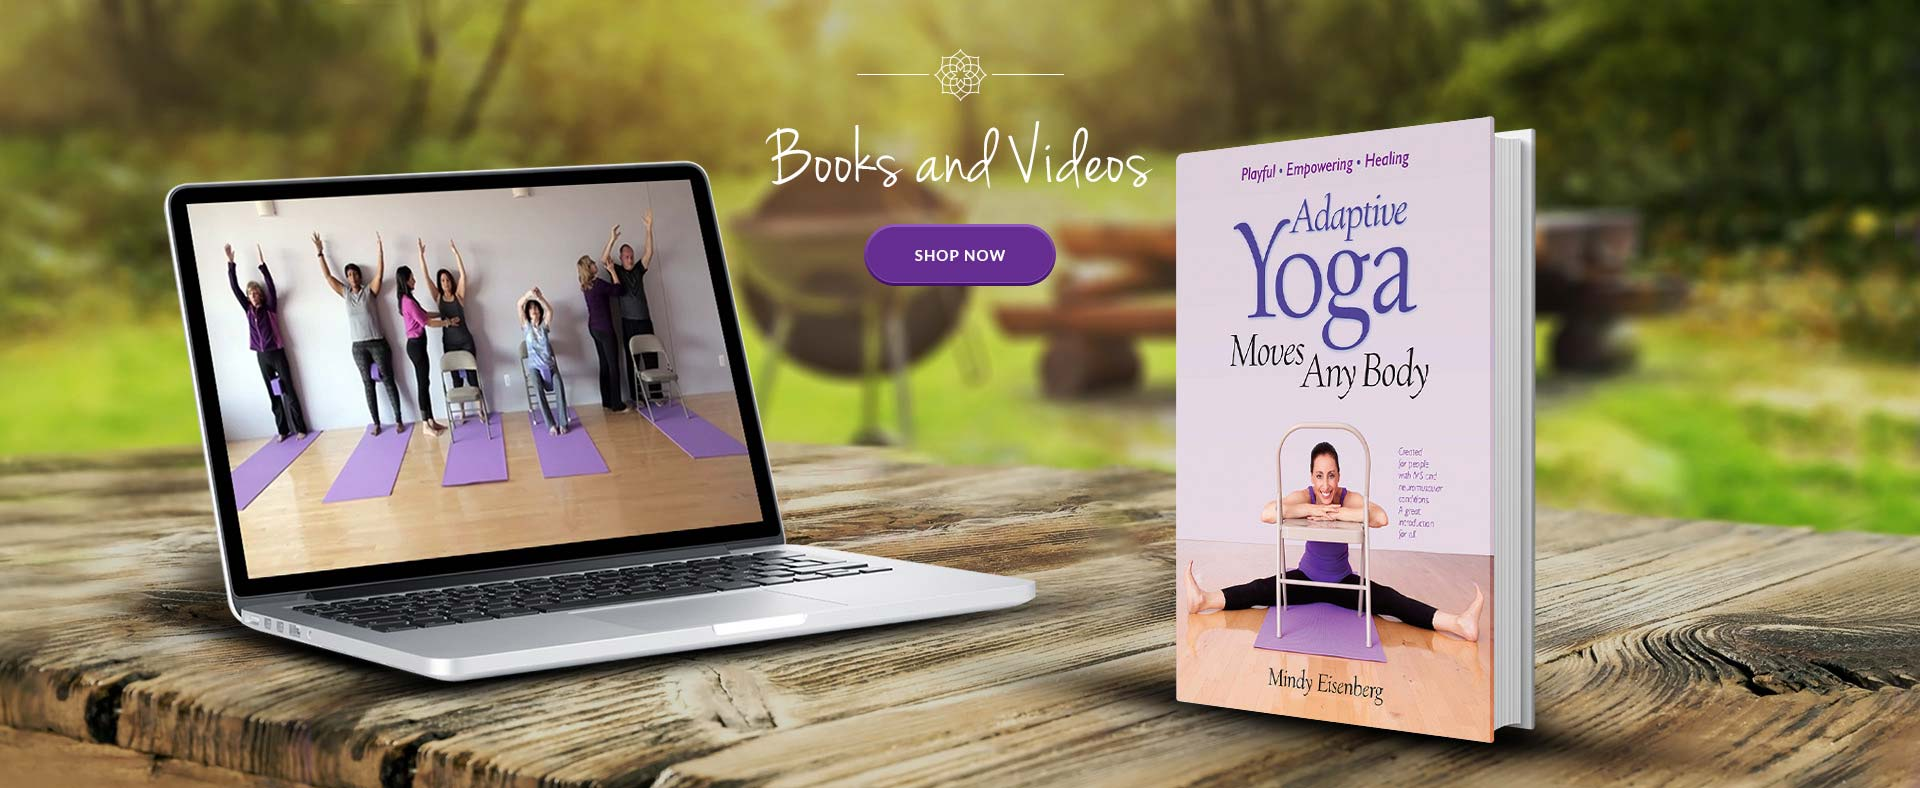 Yoga Moves MS Books & Videos